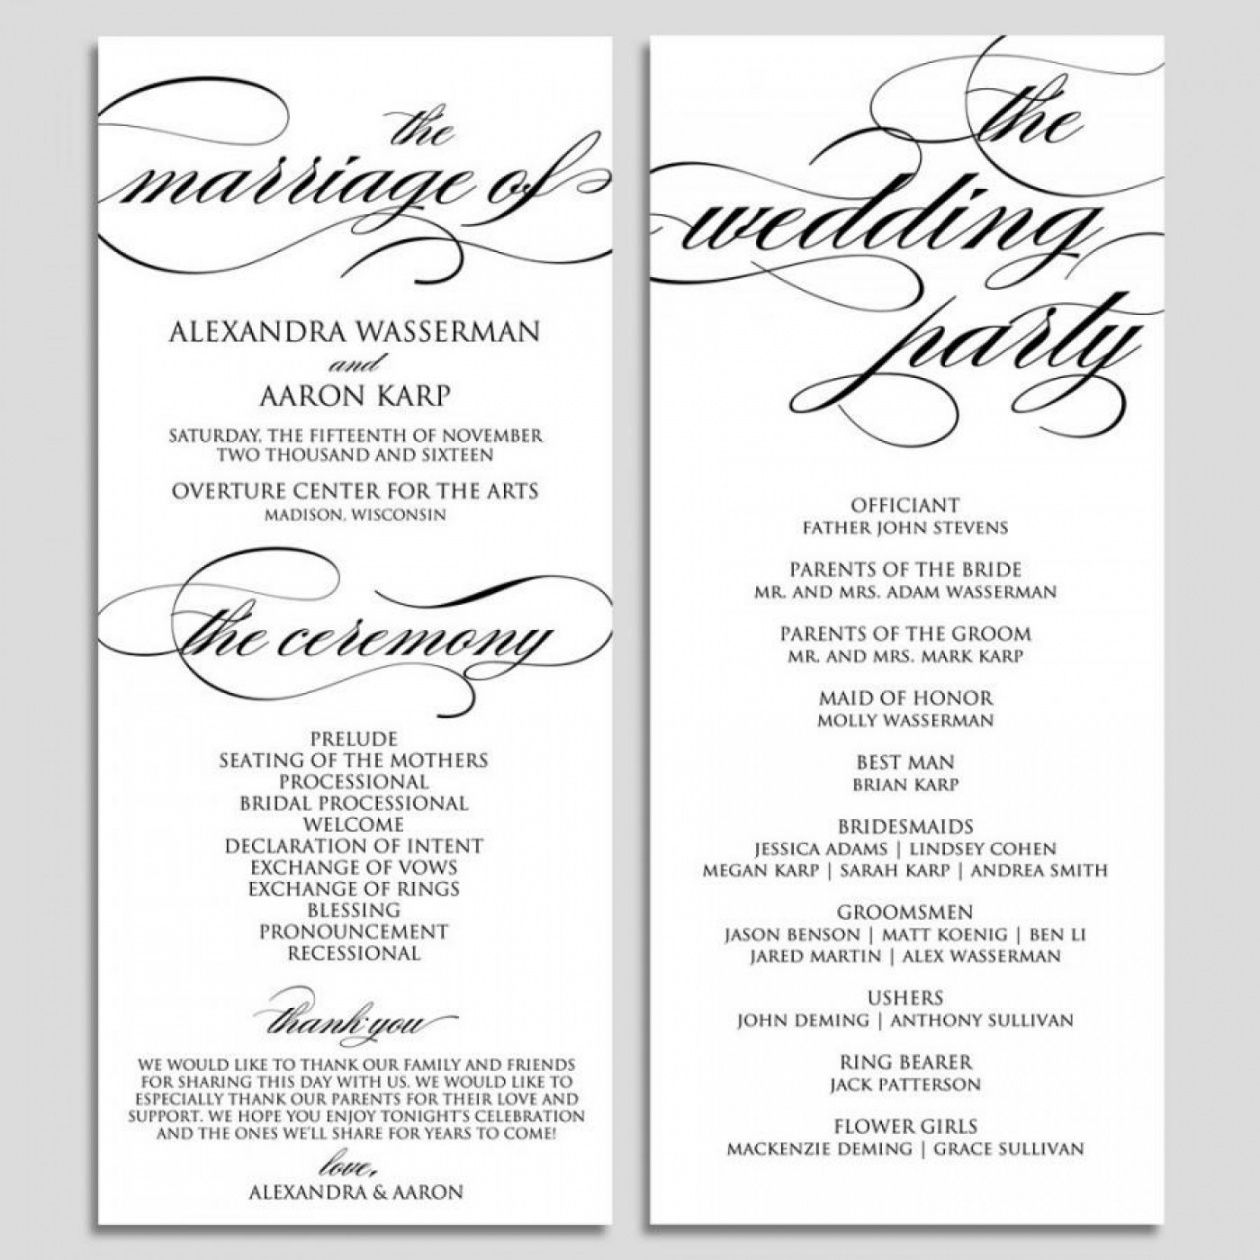 editable 035 amazing wedding ceremony programs template and program wedding ceremony itinerary template doc